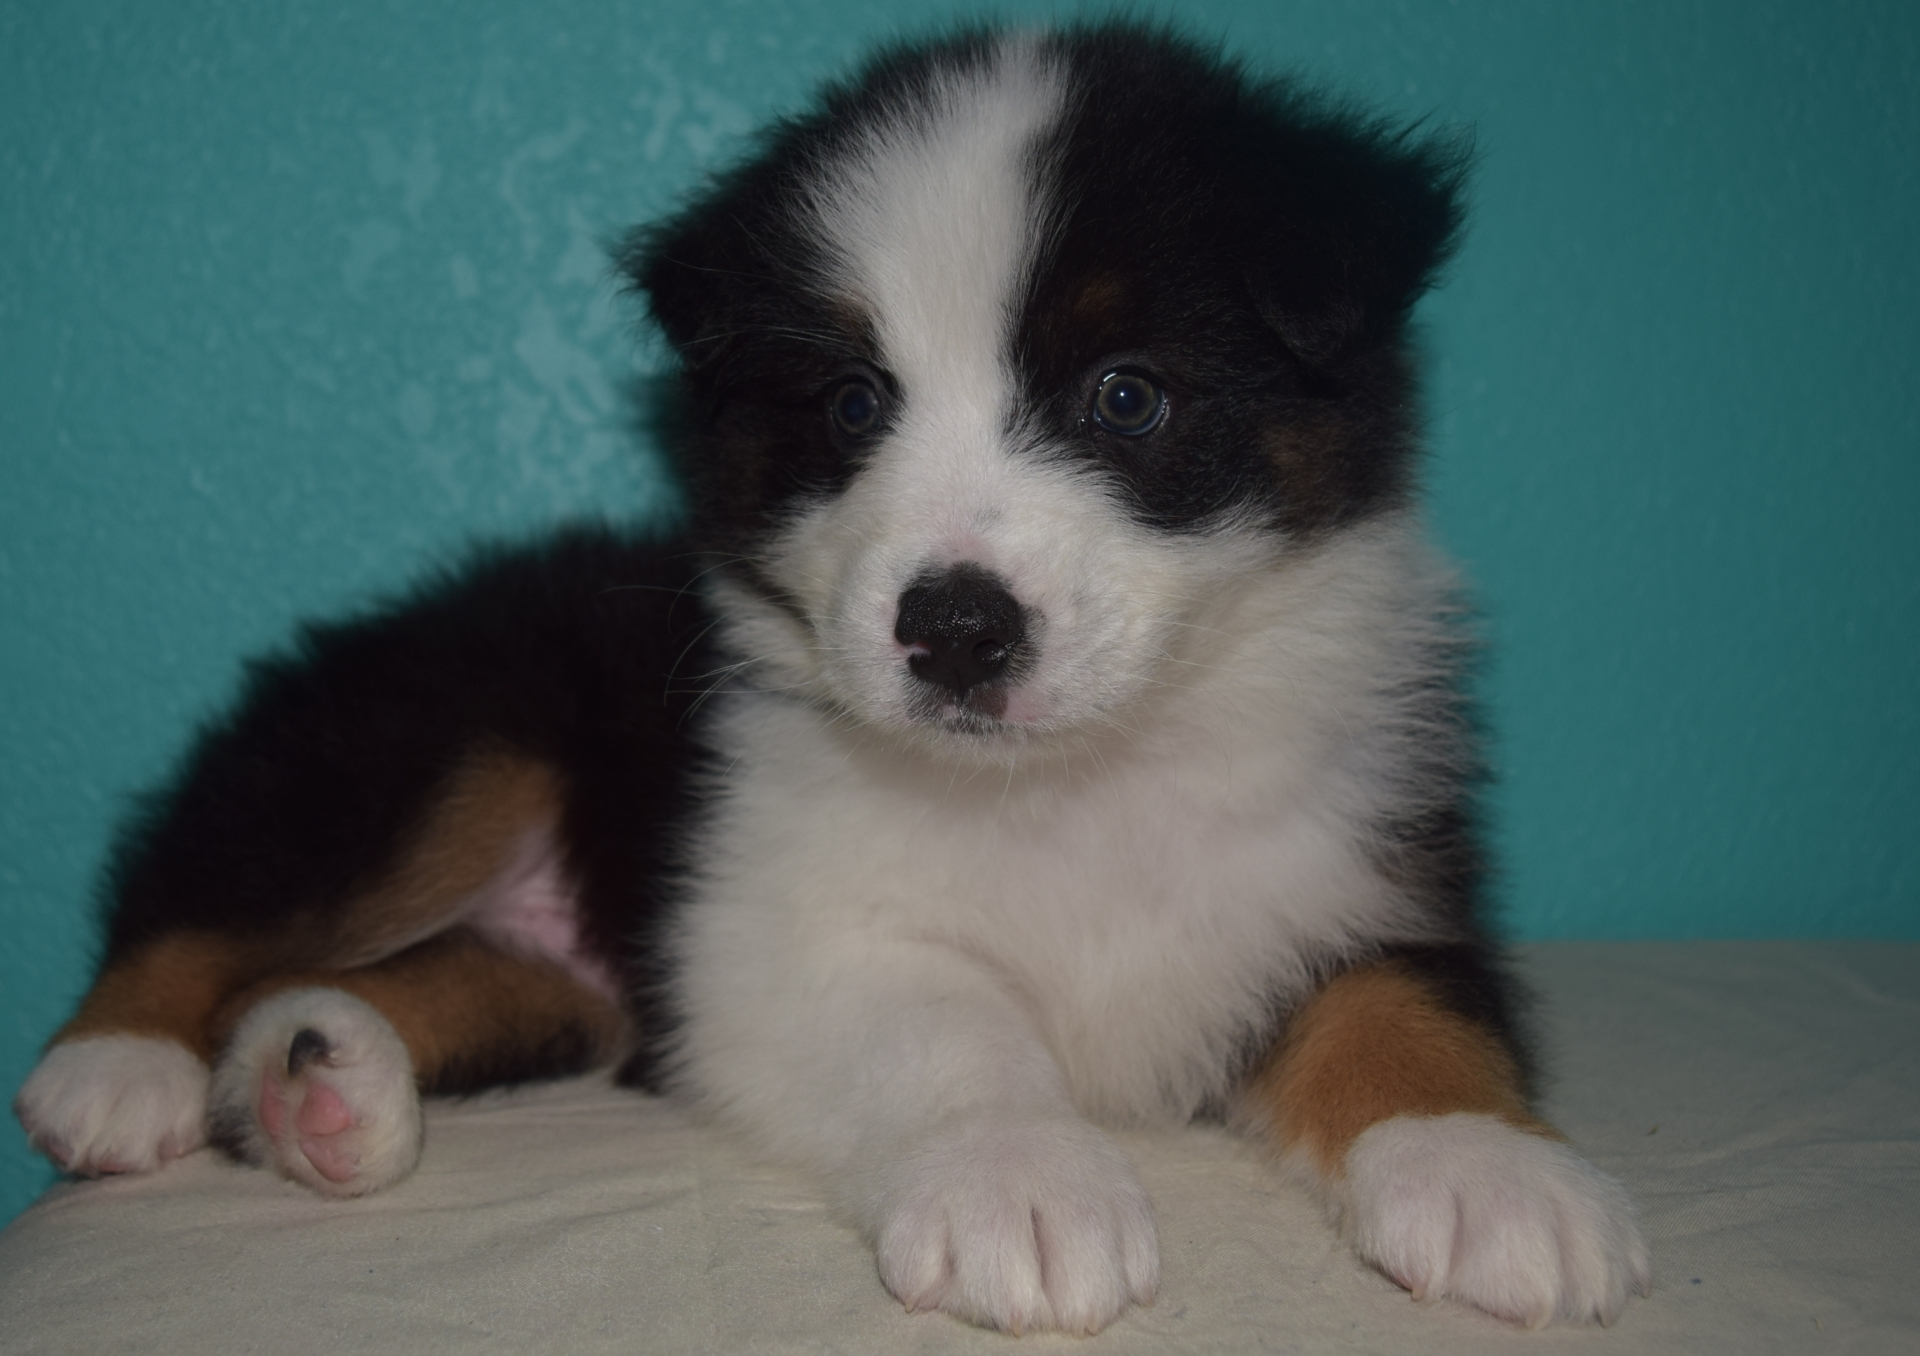 Black Tri Male Australian Shepherd Puppy #3 1 day